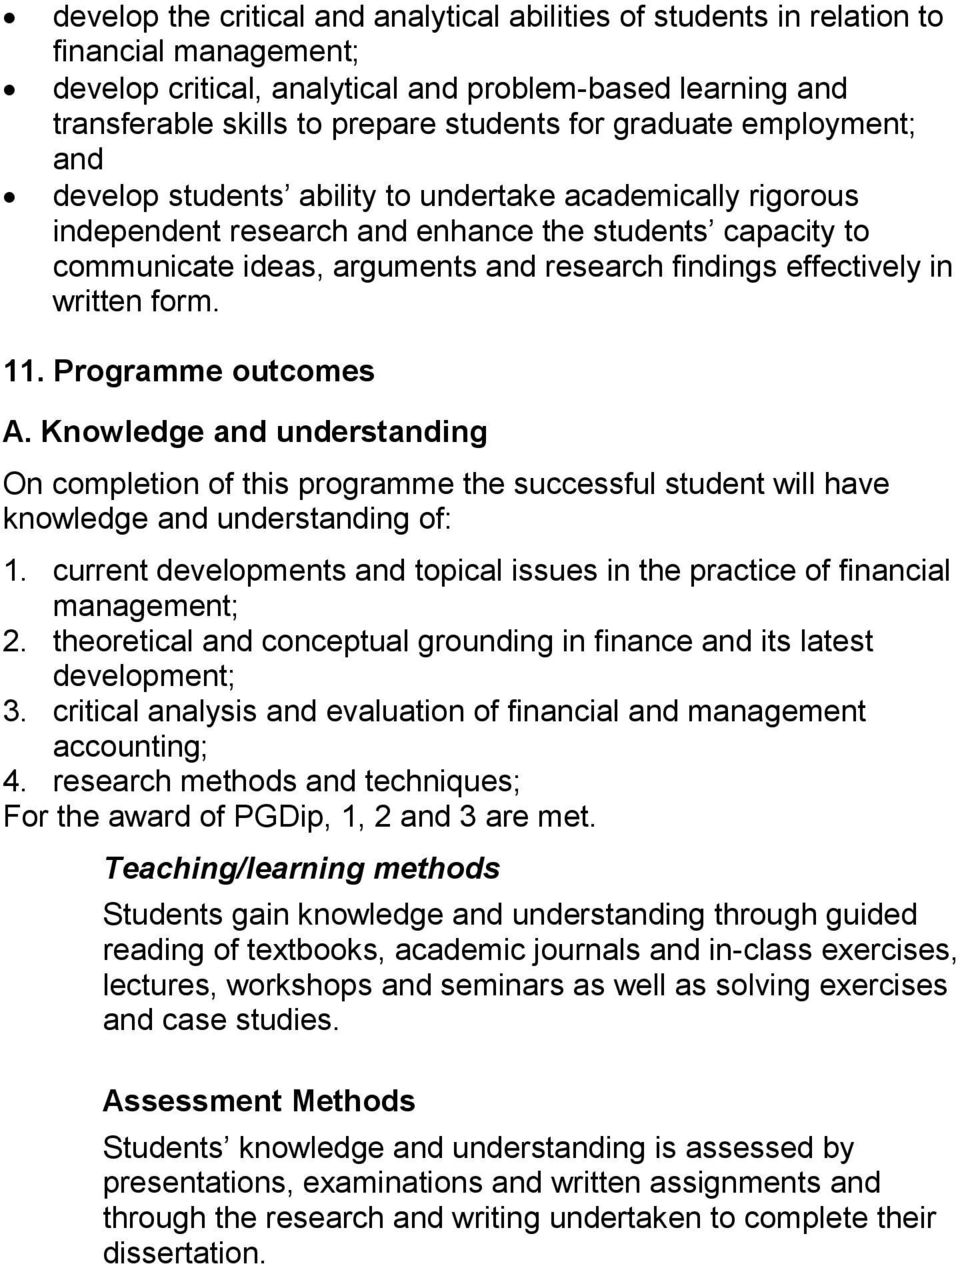 effectively in written form. 11. Programme outcomes. Knowledge and understanding On completion of this programme the successful student will have knowledge and understanding of: 1.